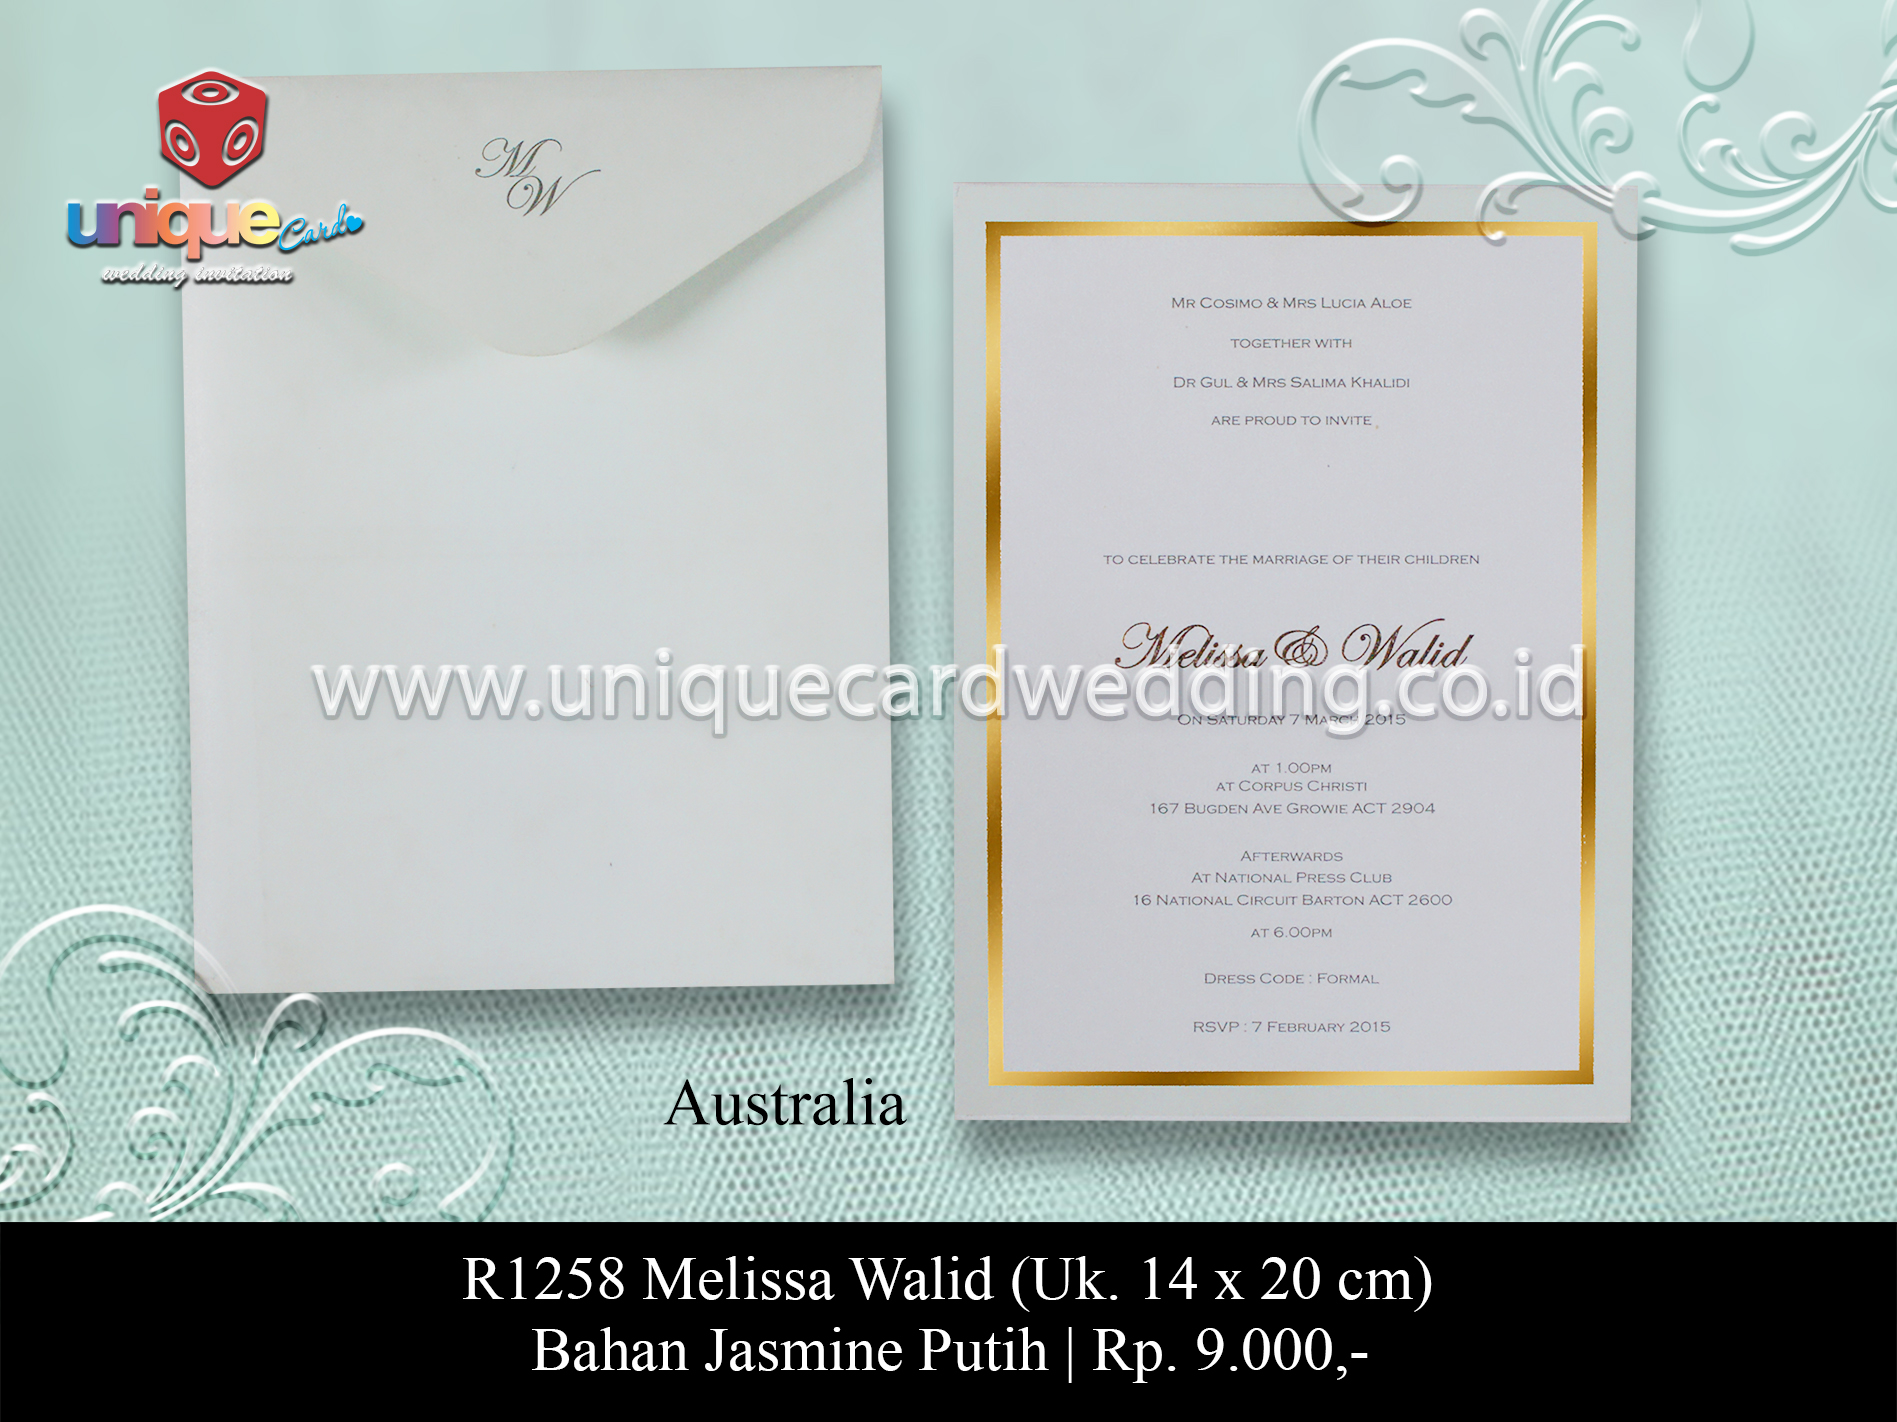 Home - Unique Card Wedding Invitation